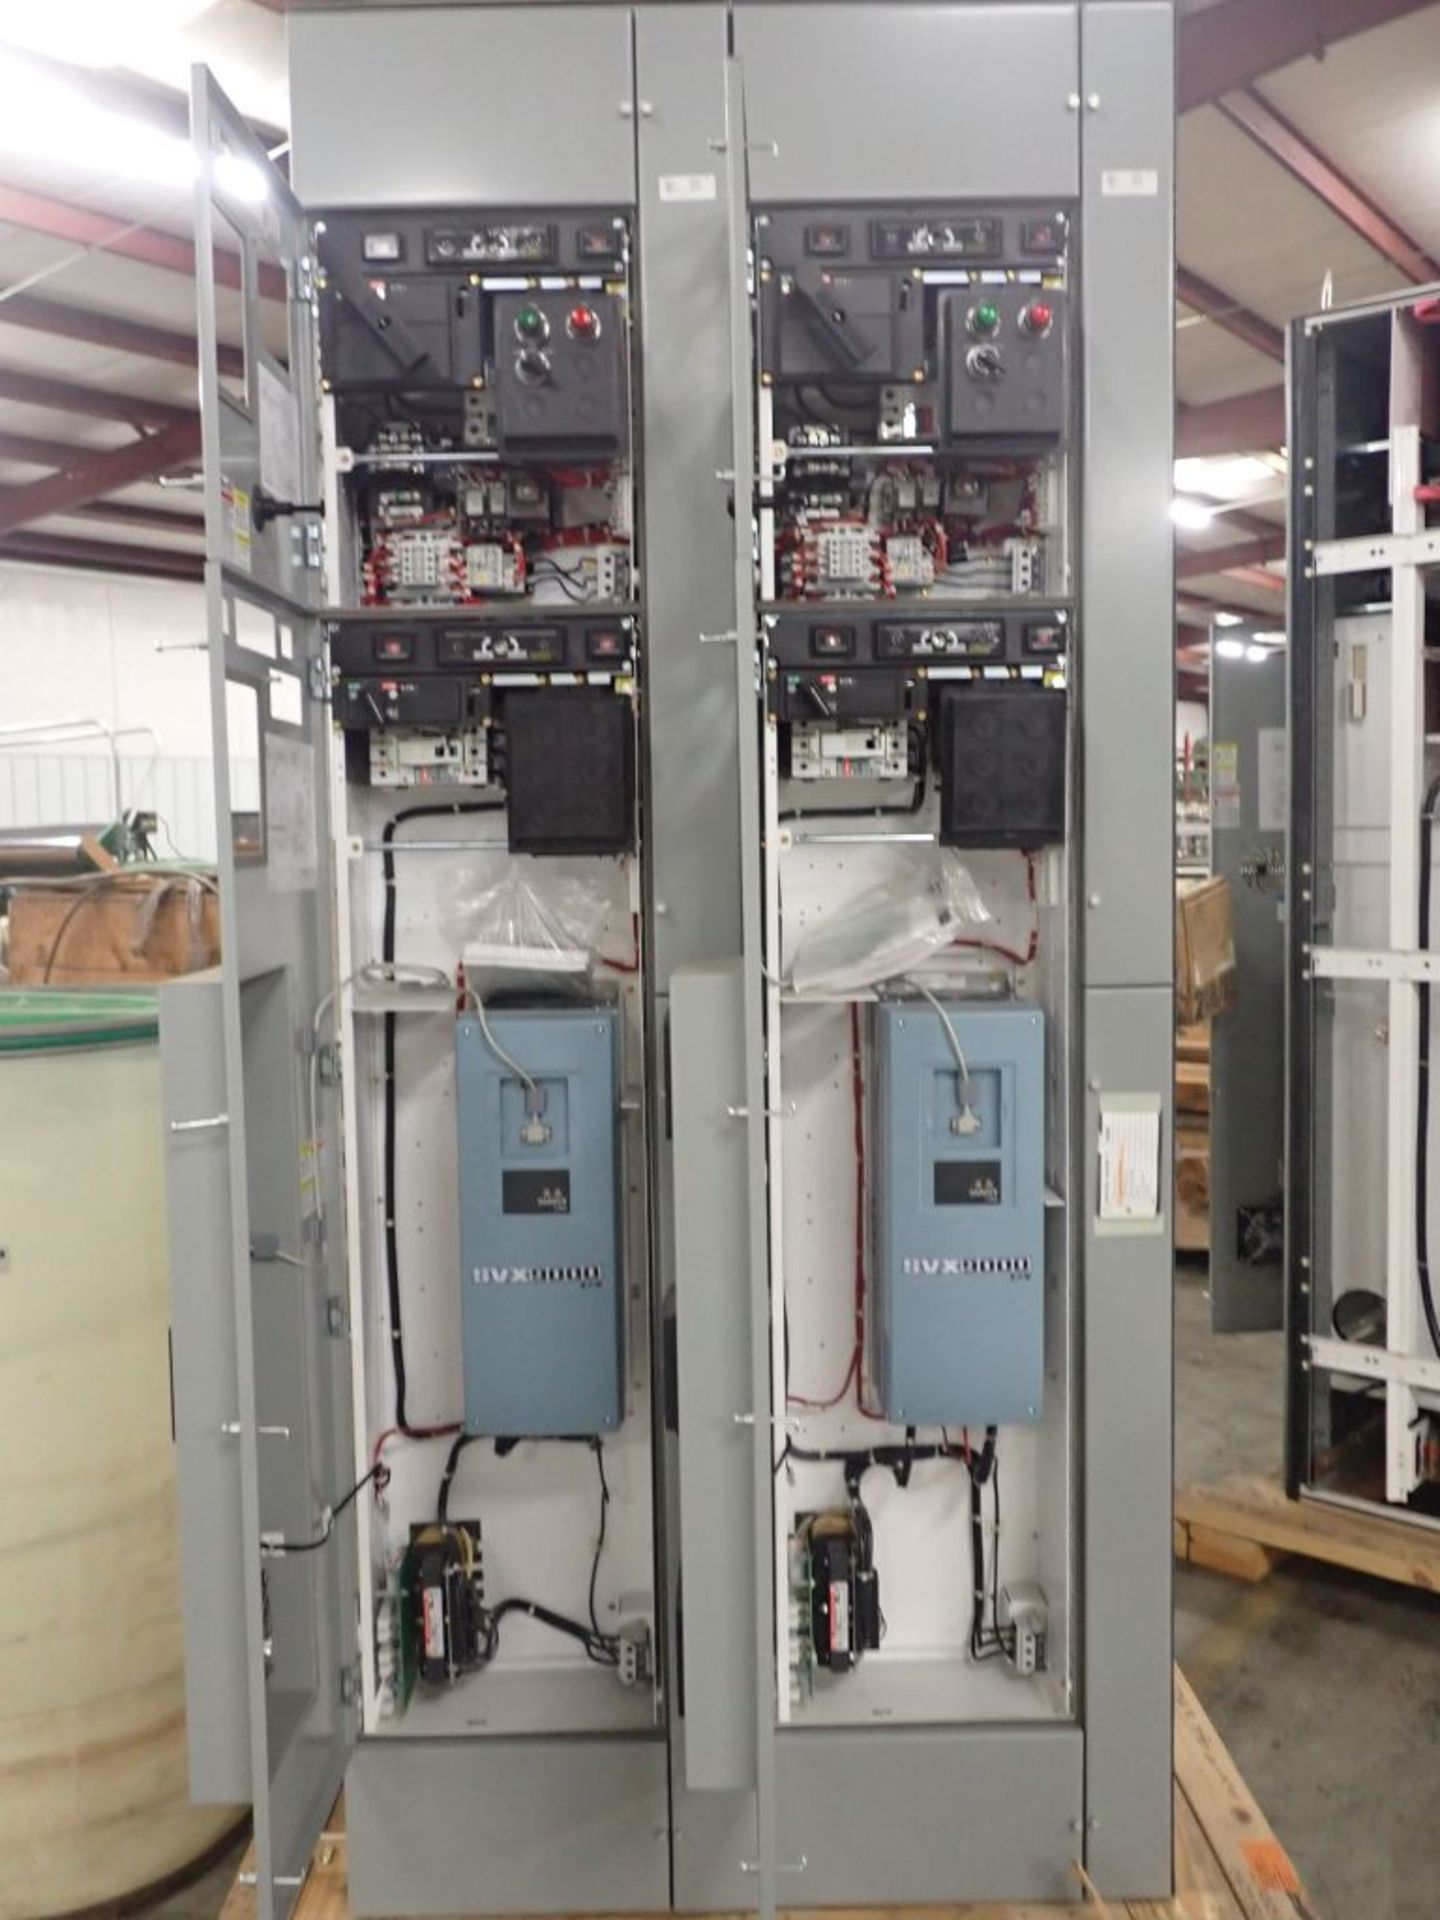 Eaton Freedom 2100 Series Motor Control Center   (2) F206-15A-10HP; (2) SVX900-50A, with Eaton AF - Image 13 of 48